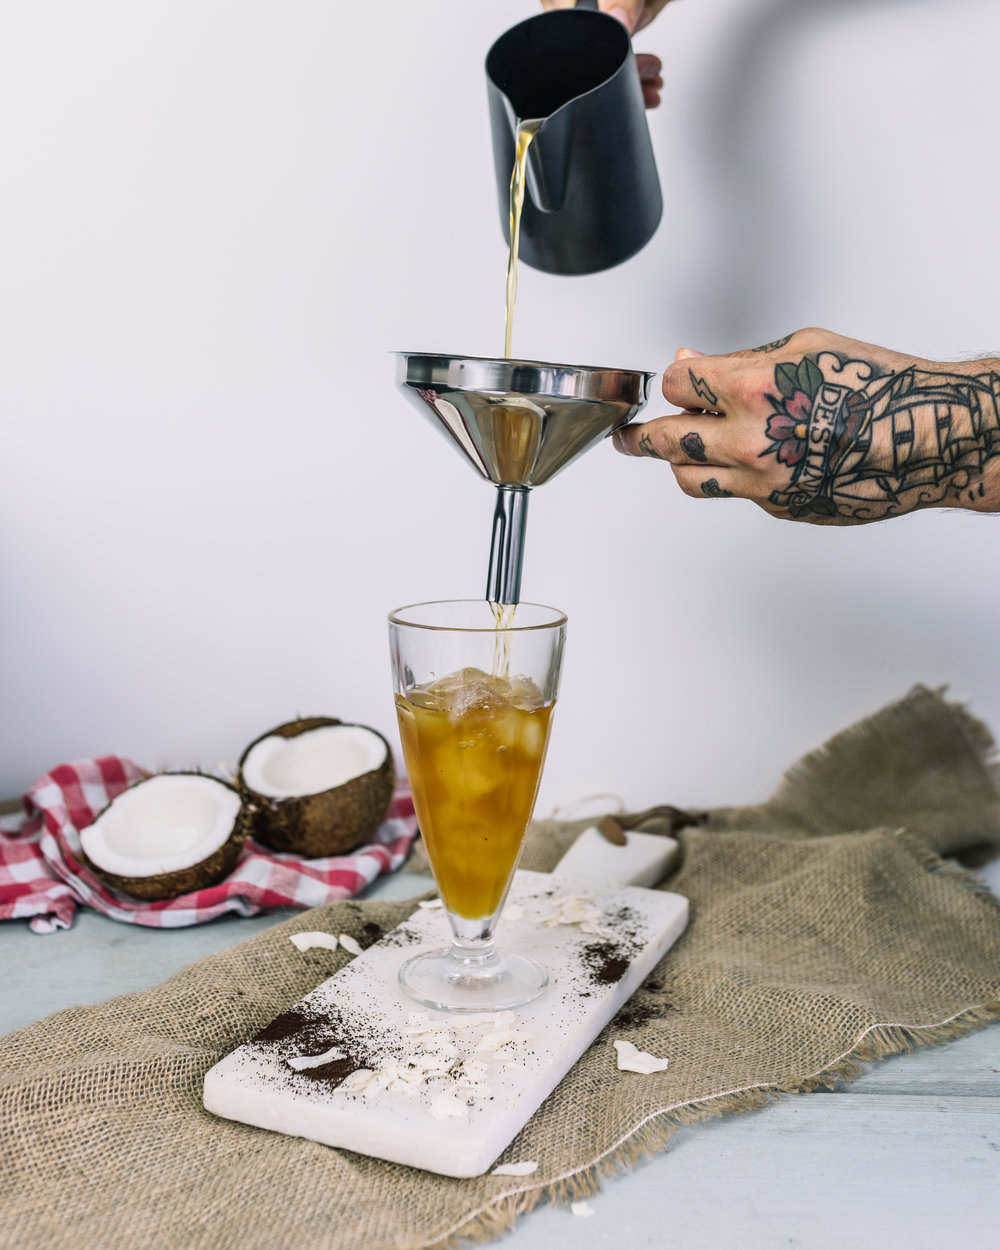 #2 Coconut ice drip coffee15.jpg